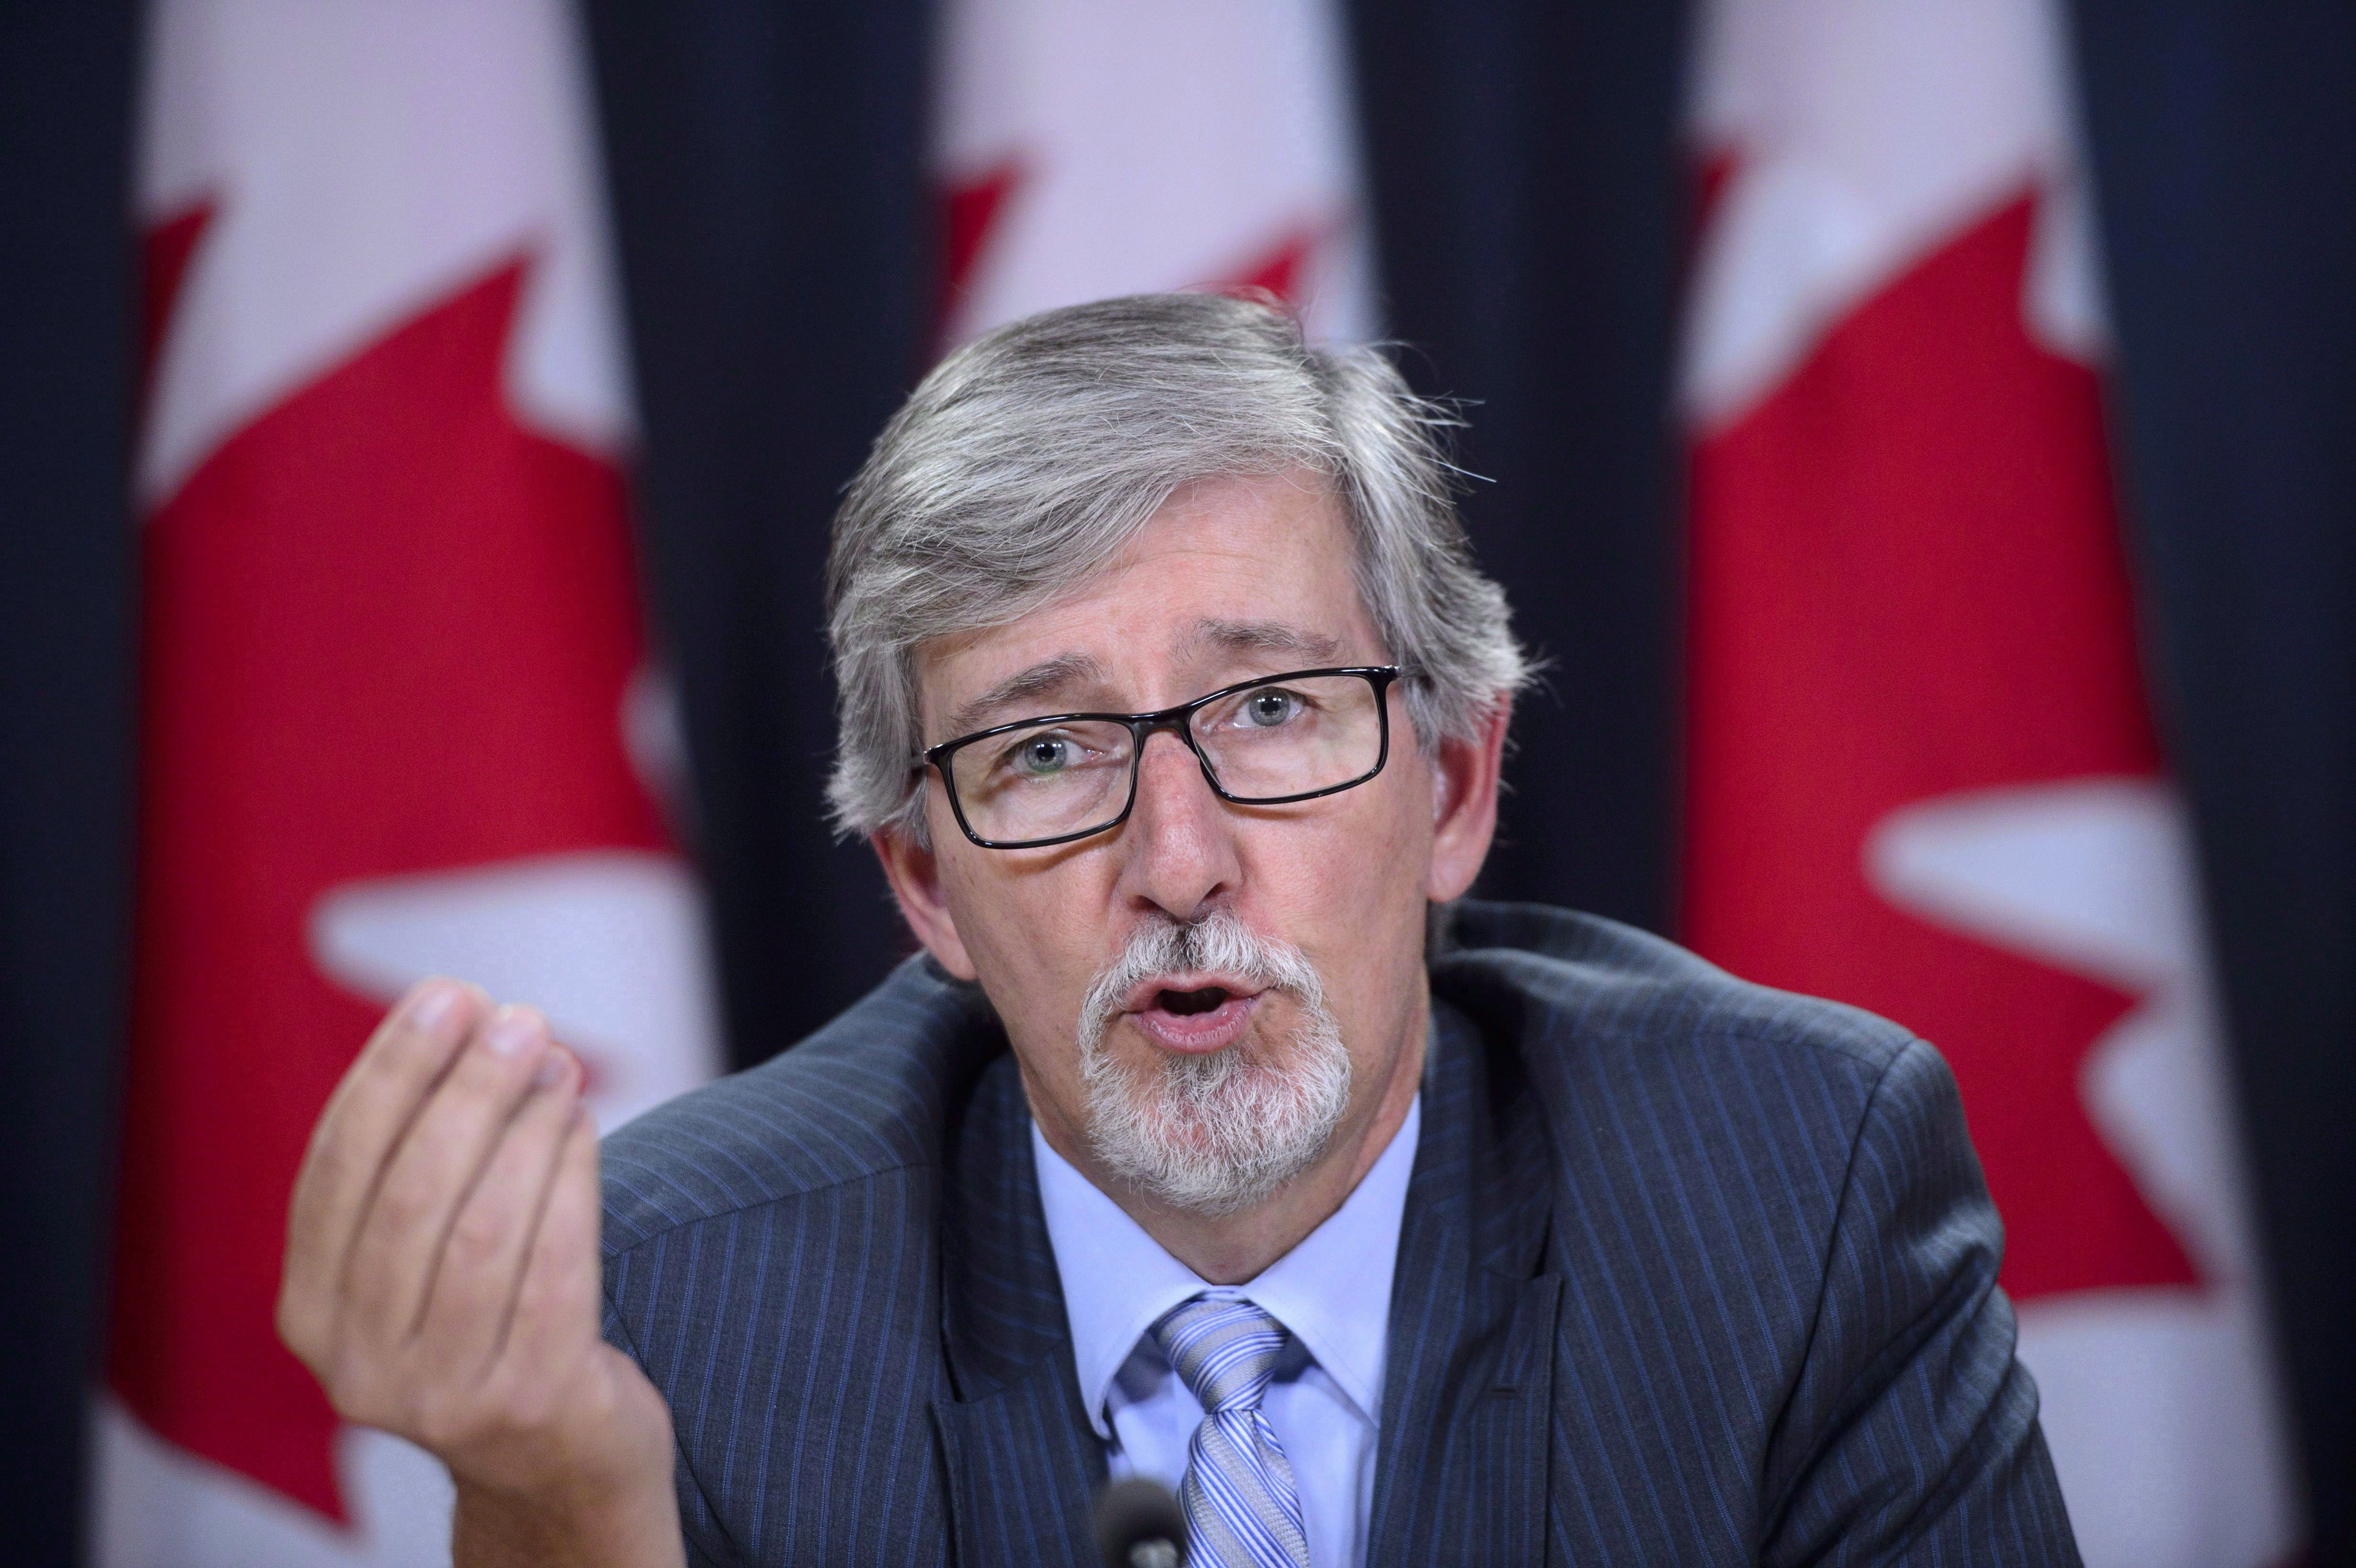 Rewriting Canadian privacy law: Commissioner signals major change on cross-border data transfers